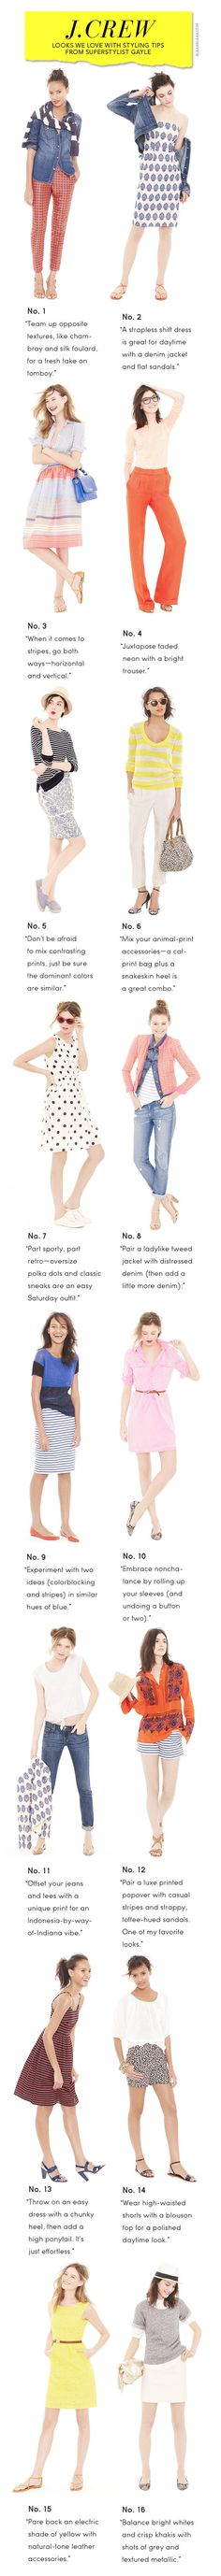 J.Crew Looks We Love May 2012 with Tips from Superstylist Gayle